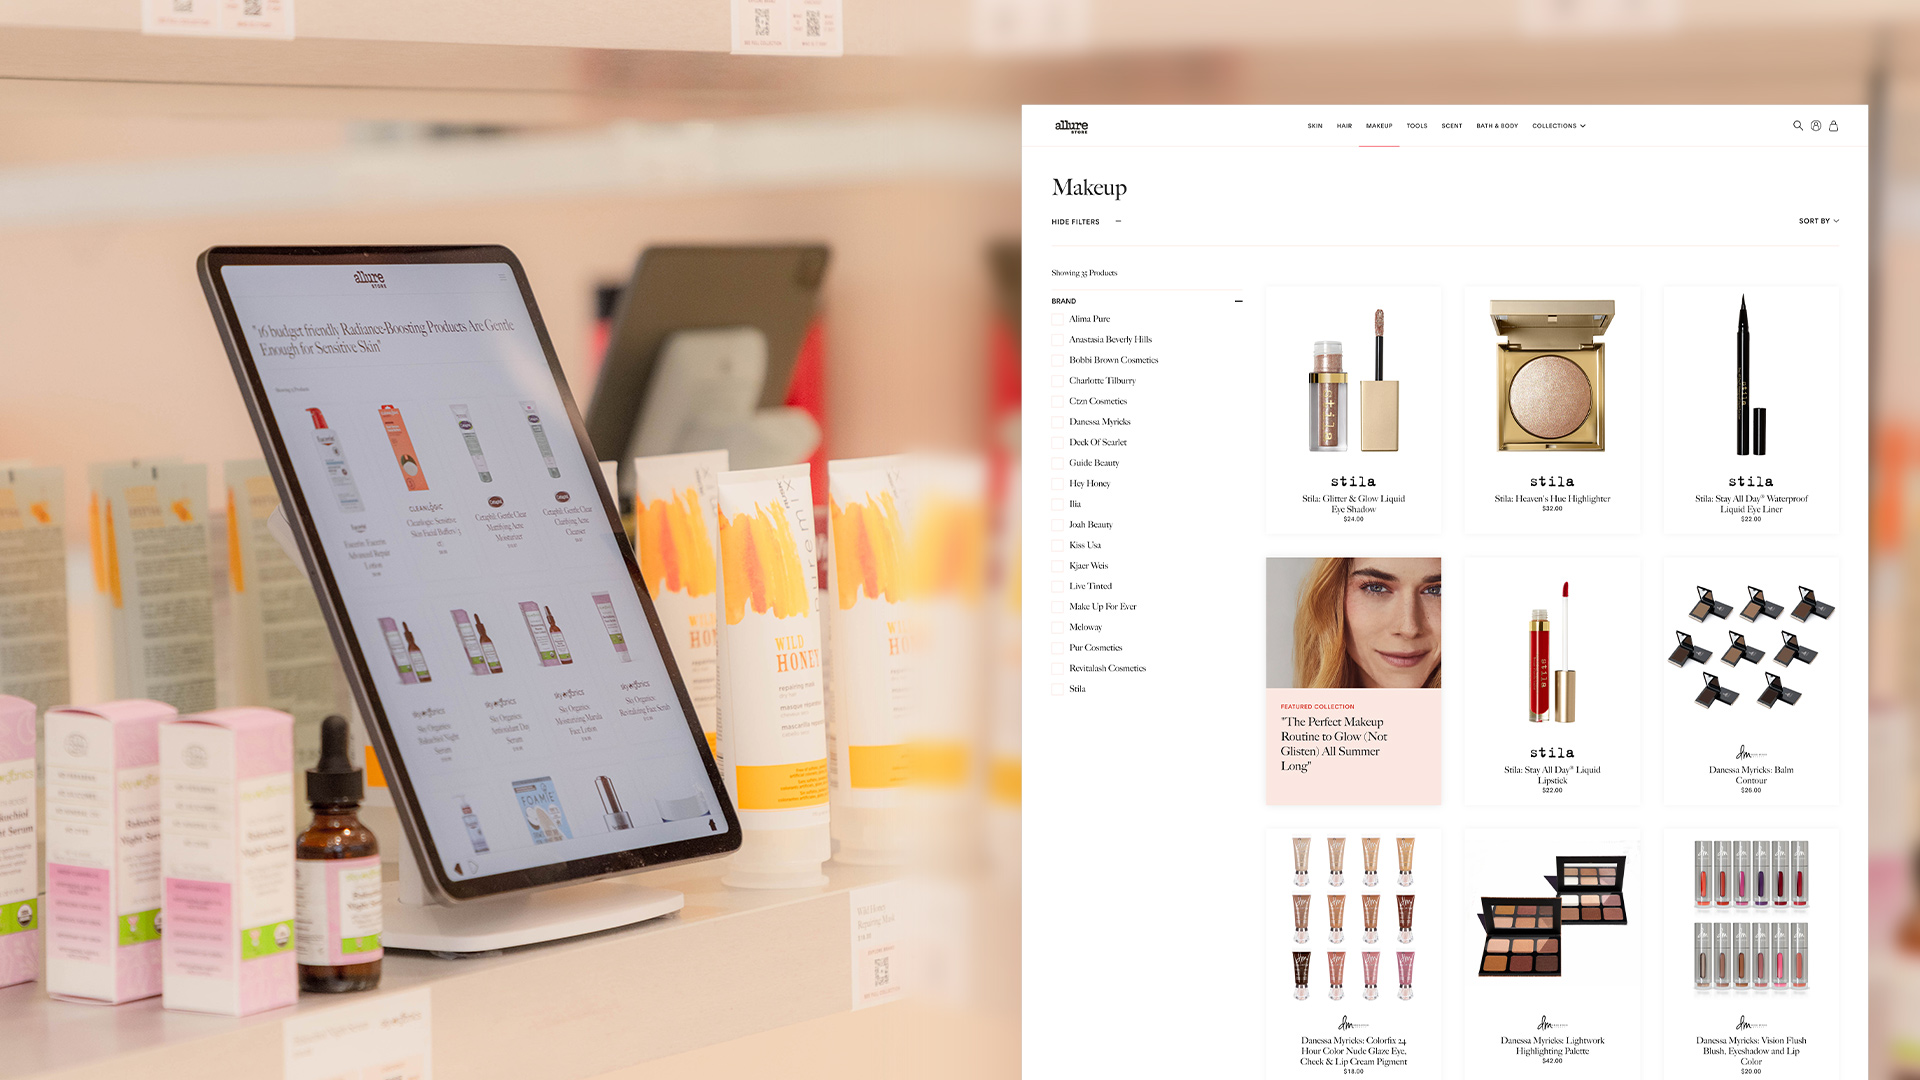 Kiosk experience at the Allure Store